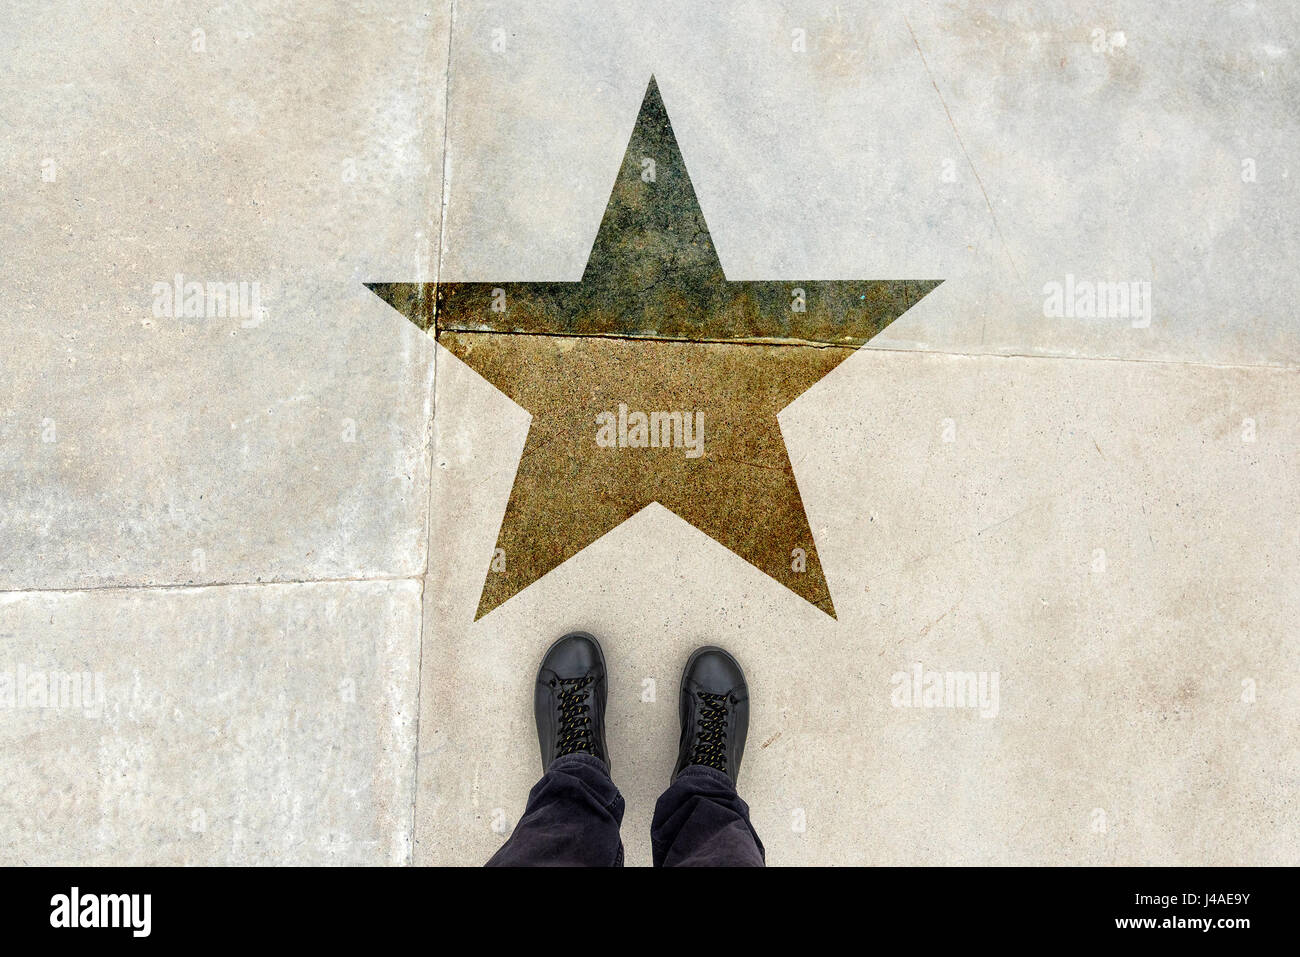 Talented young man on the road with star shape imprint - talent, skill, gifted person, vip, prize and award concept - Stock Image